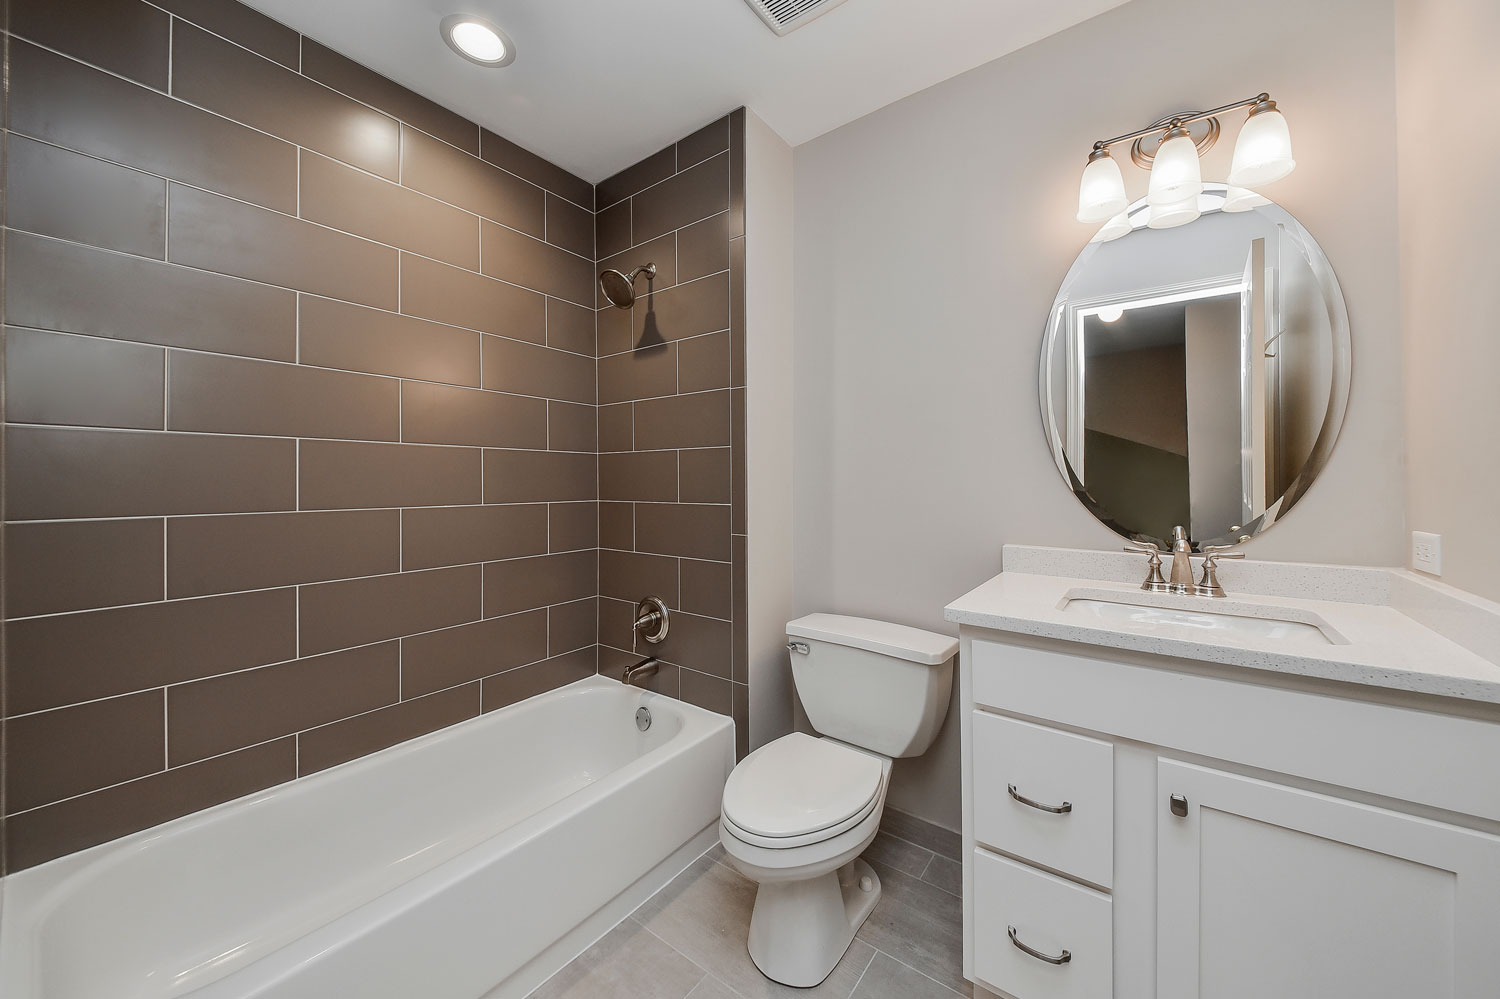 Charles cindy 39 s hall bathroom remodel pictures home for Bathroom remodeling naperville il